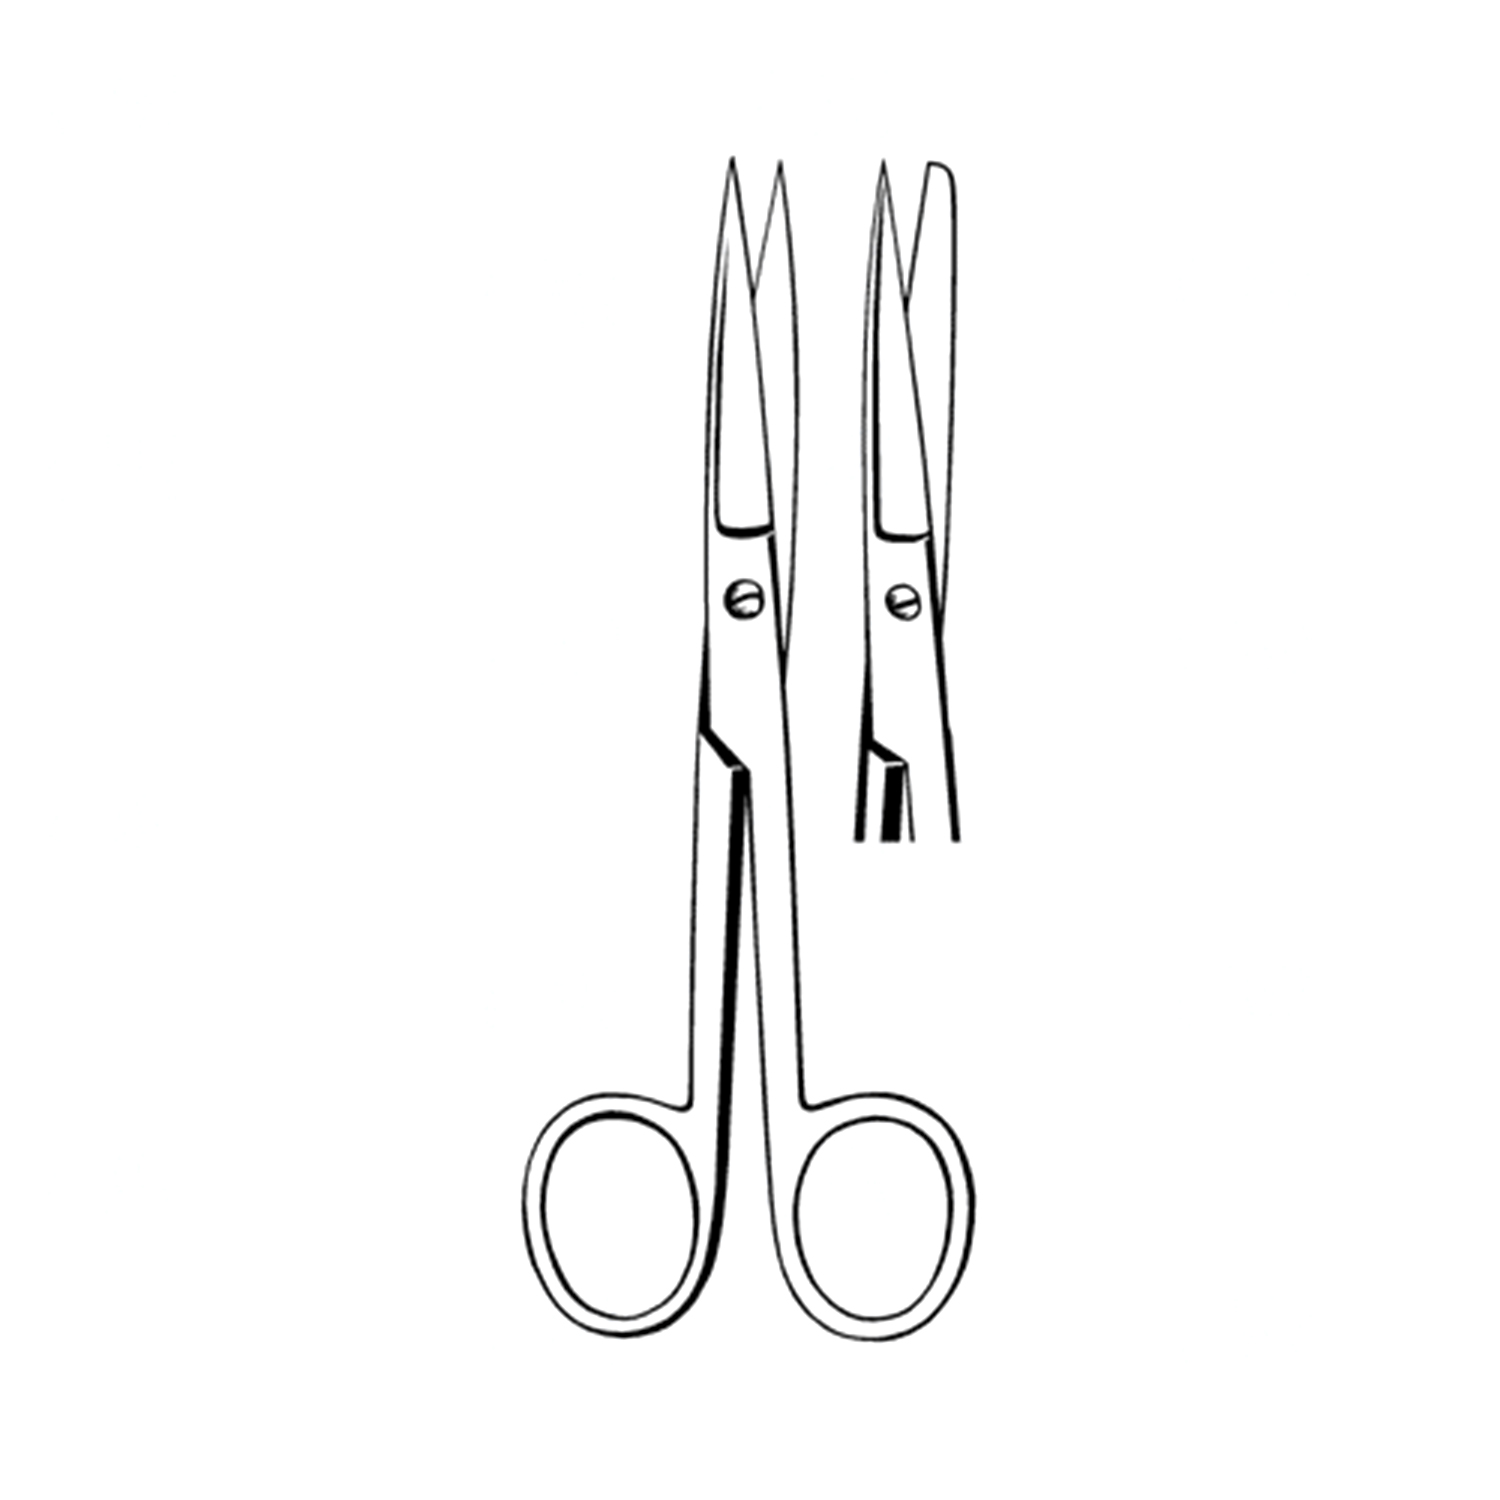 Sklar Econo™ Operating Scissors